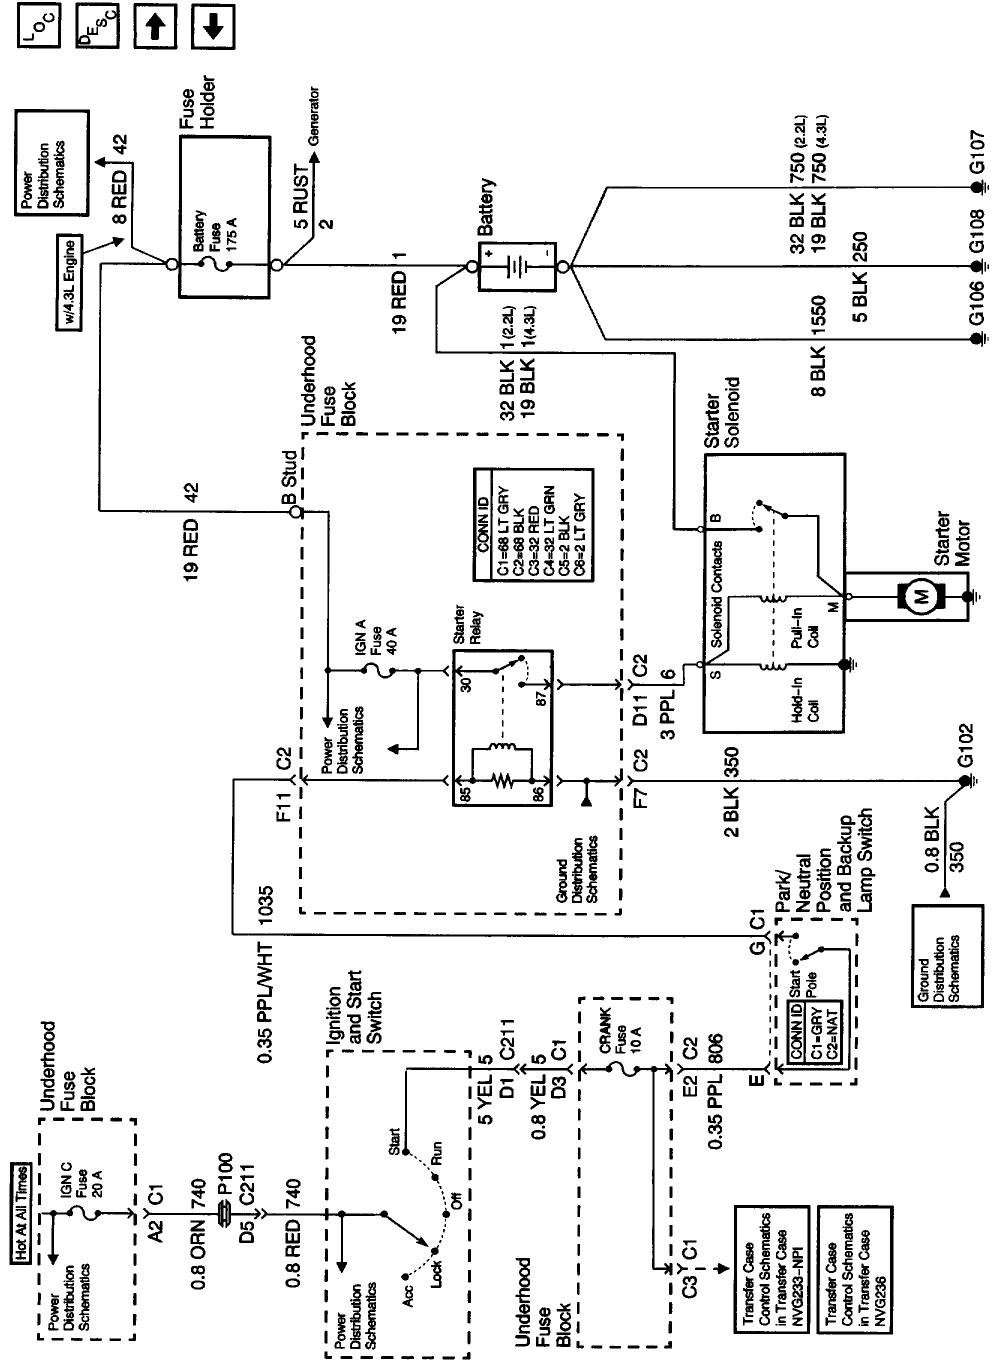 2000 Chevy 4.3 Engine Diagram I Have A 2000 Chevrolet S10 that Had A 2 2 4cyl In It with Flex Fuel Capabilities the Engine Of 2000 Chevy 4.3 Engine Diagram